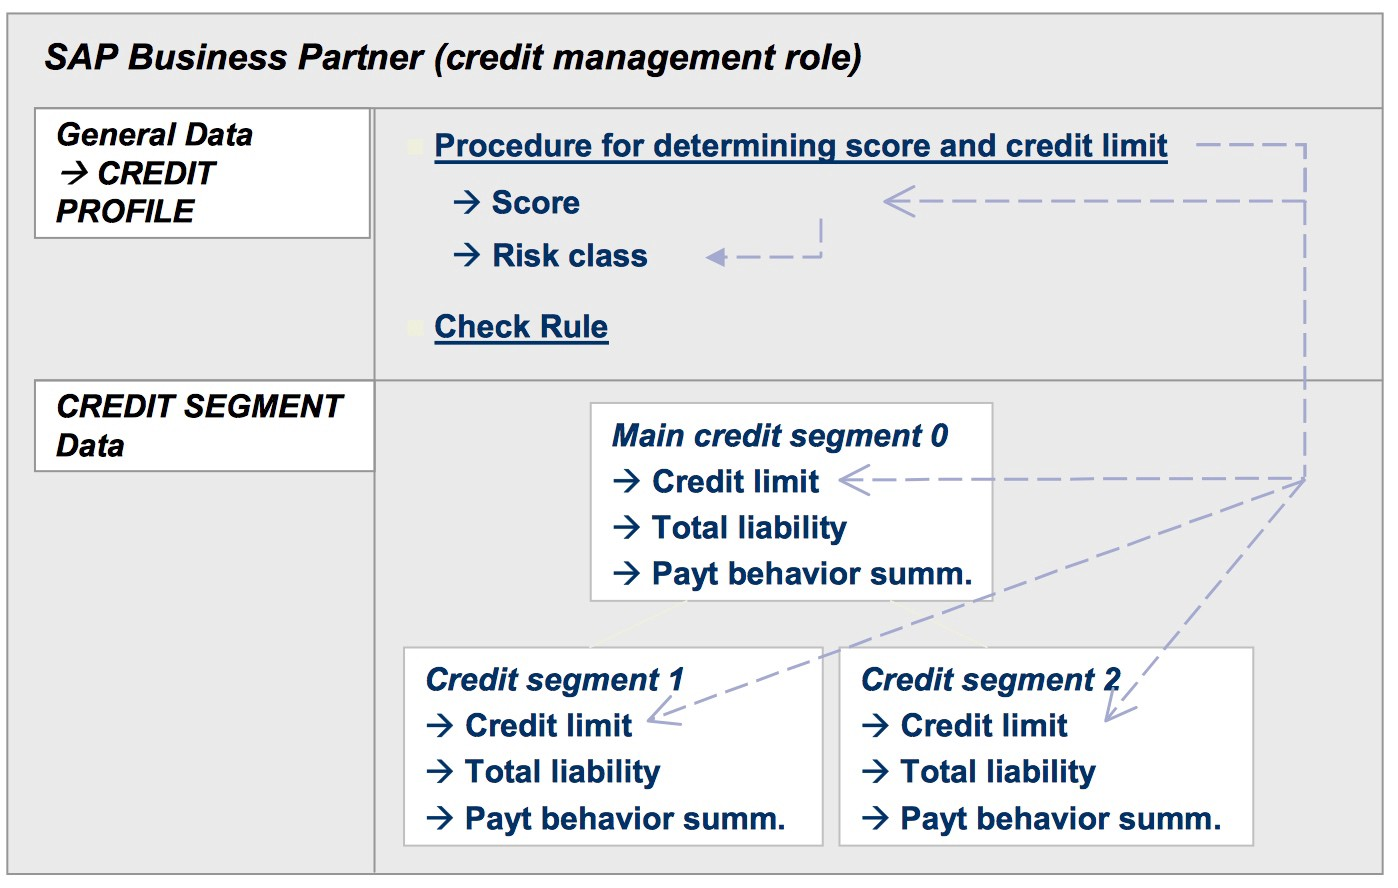 business process in sap credit management part 2: credit master data